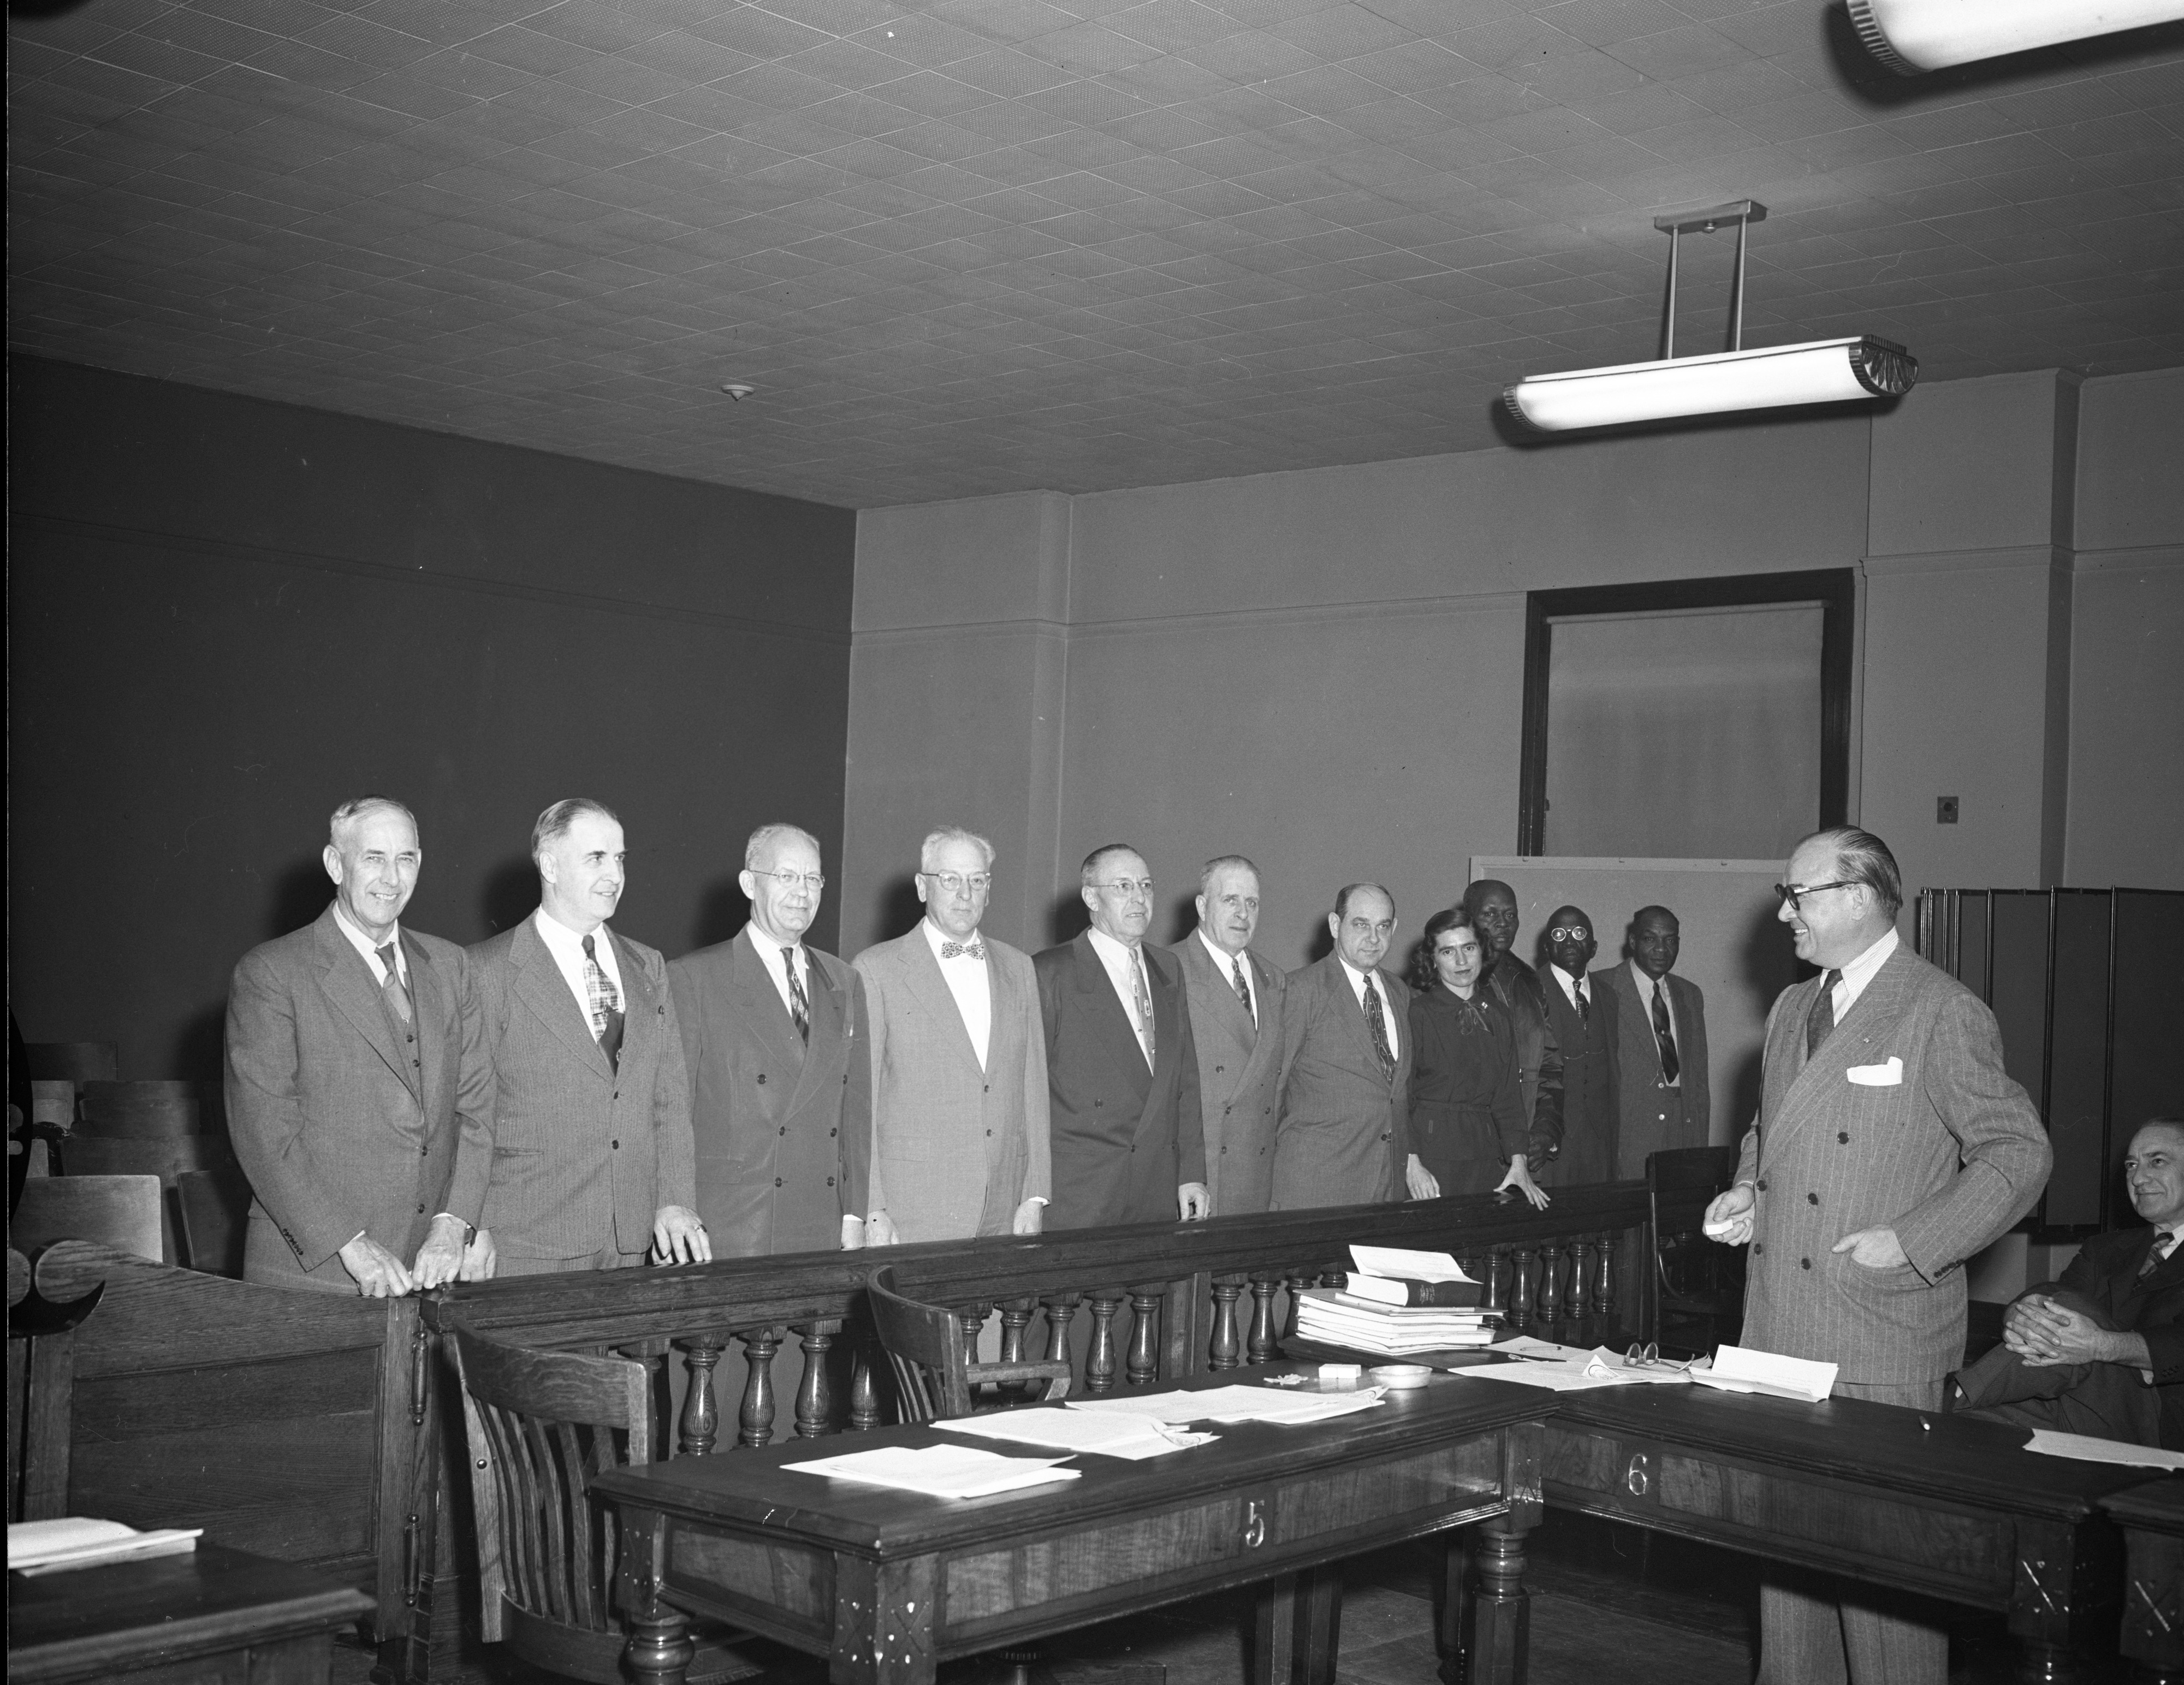 Ann Arbor City Employees Honored With 30, 25 and 10 Year Pins, January 1954 image